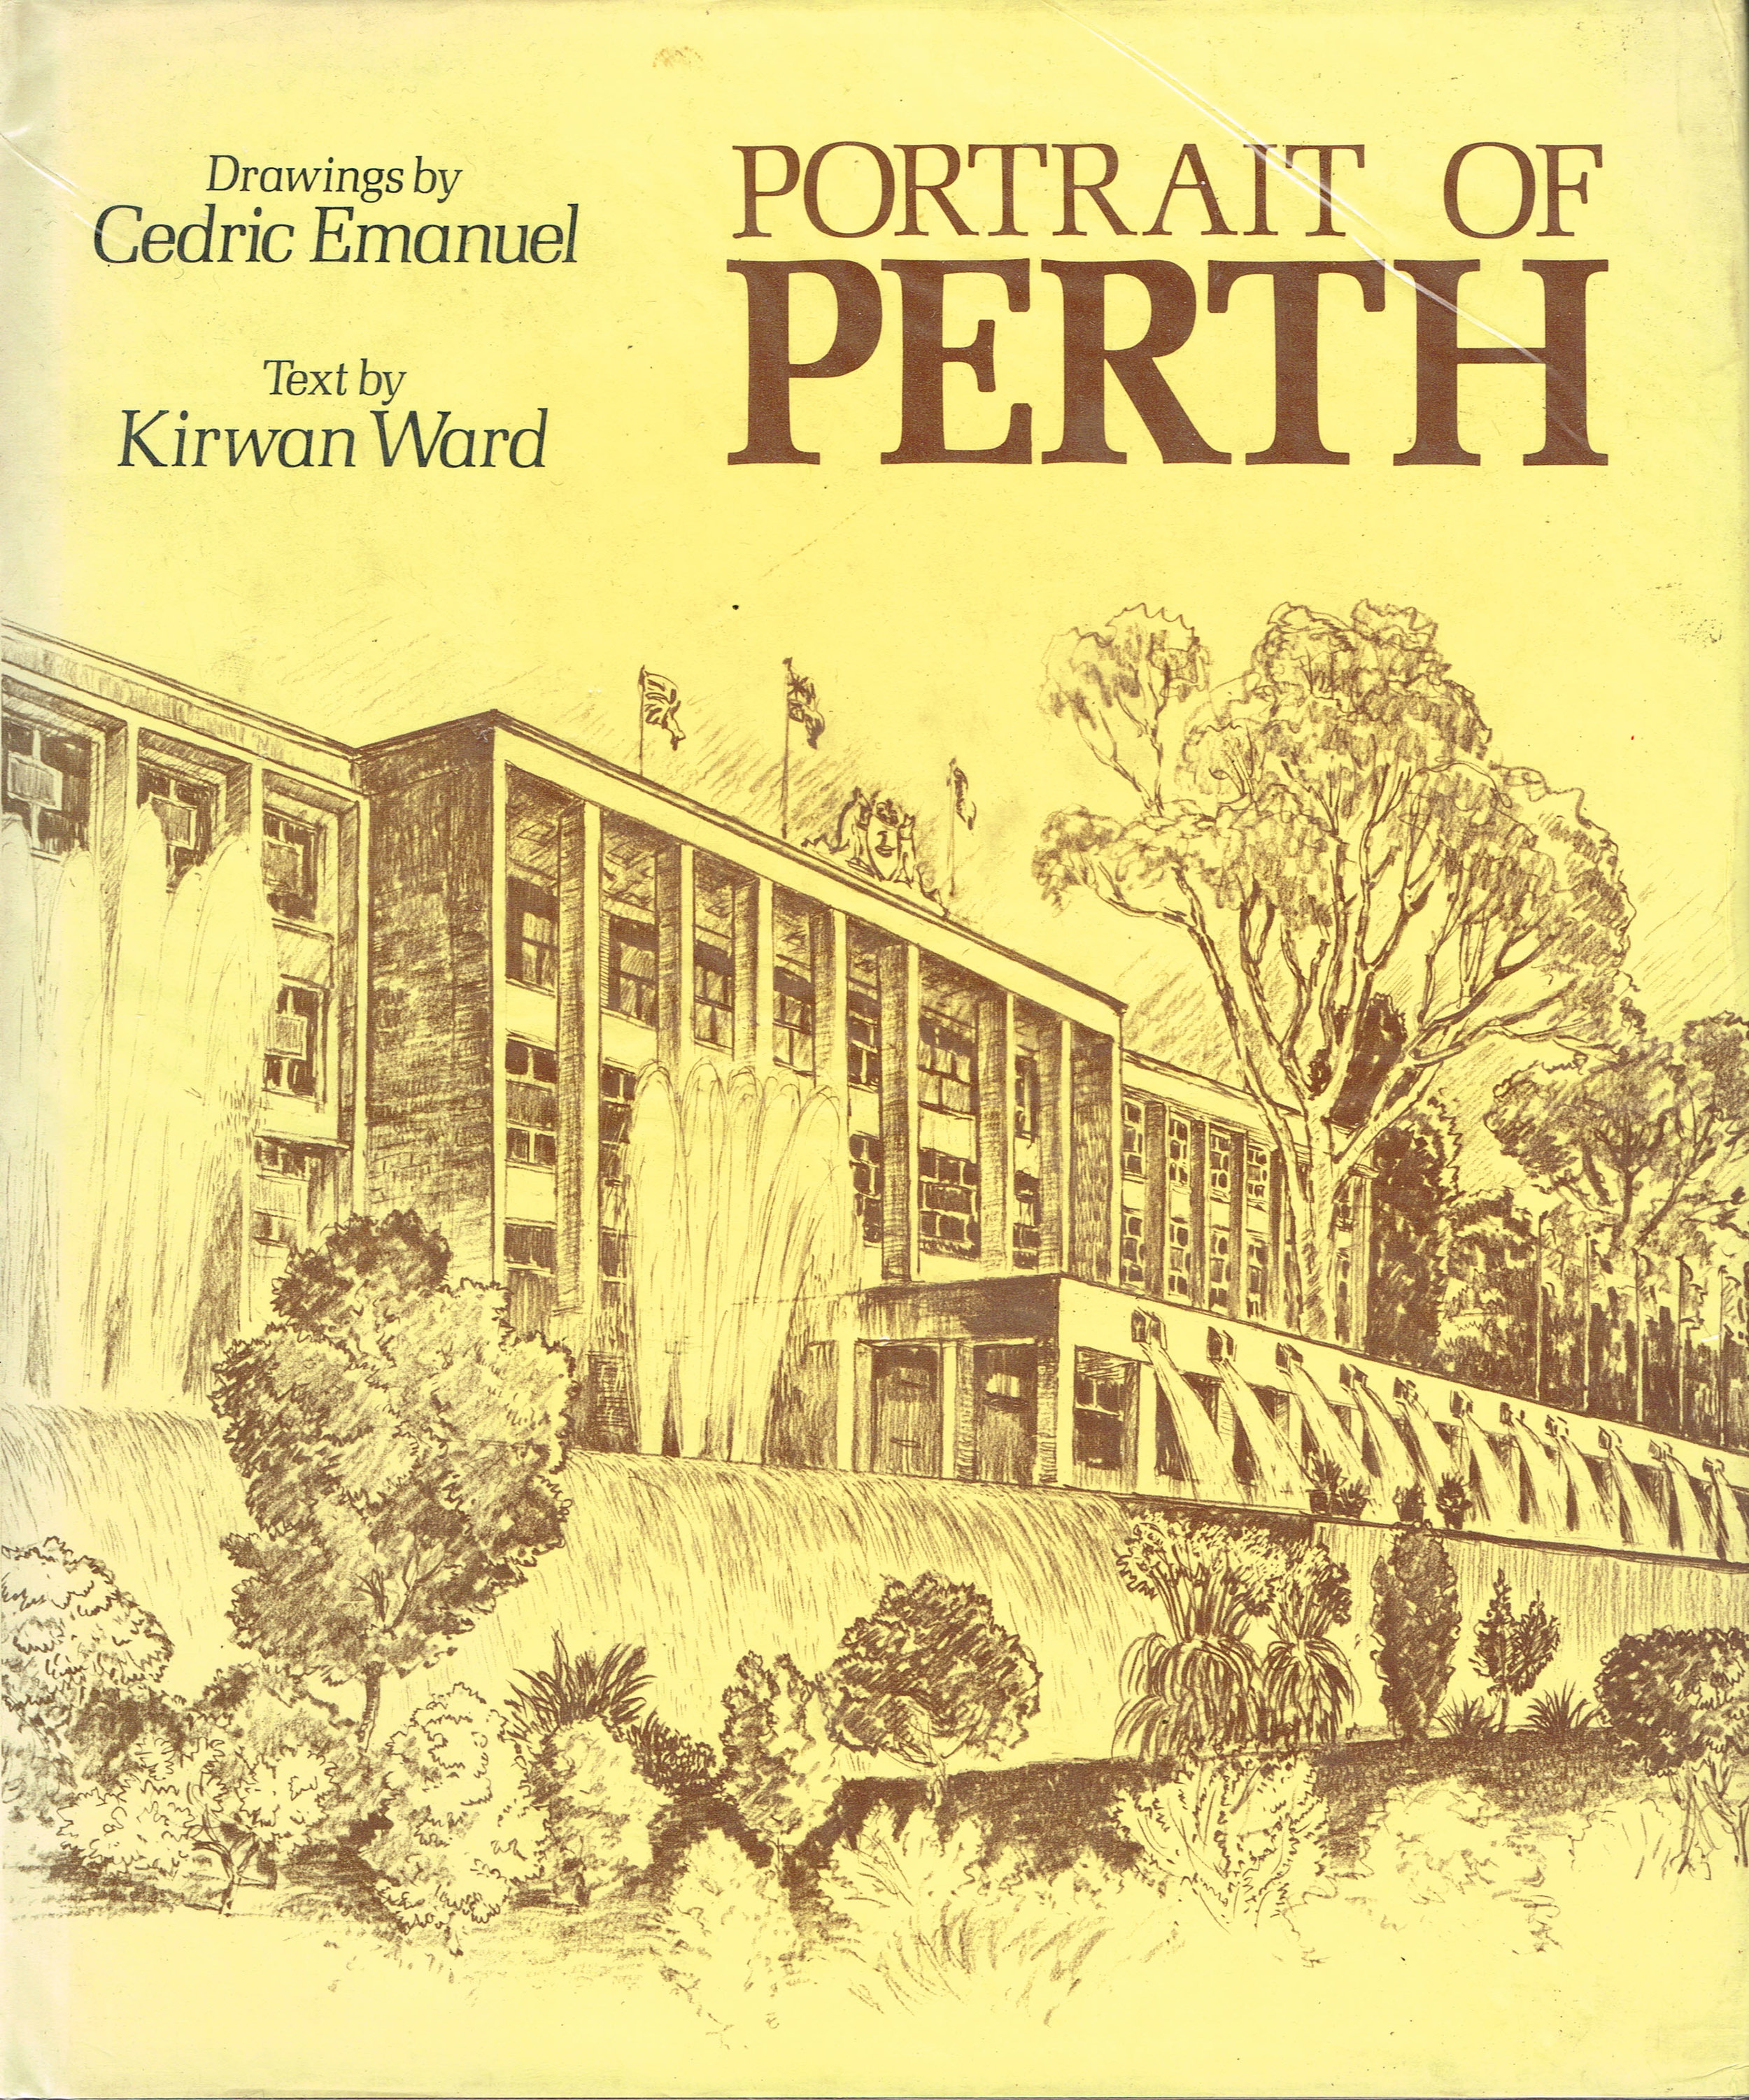 Portrate of Perth Drawing.jpg